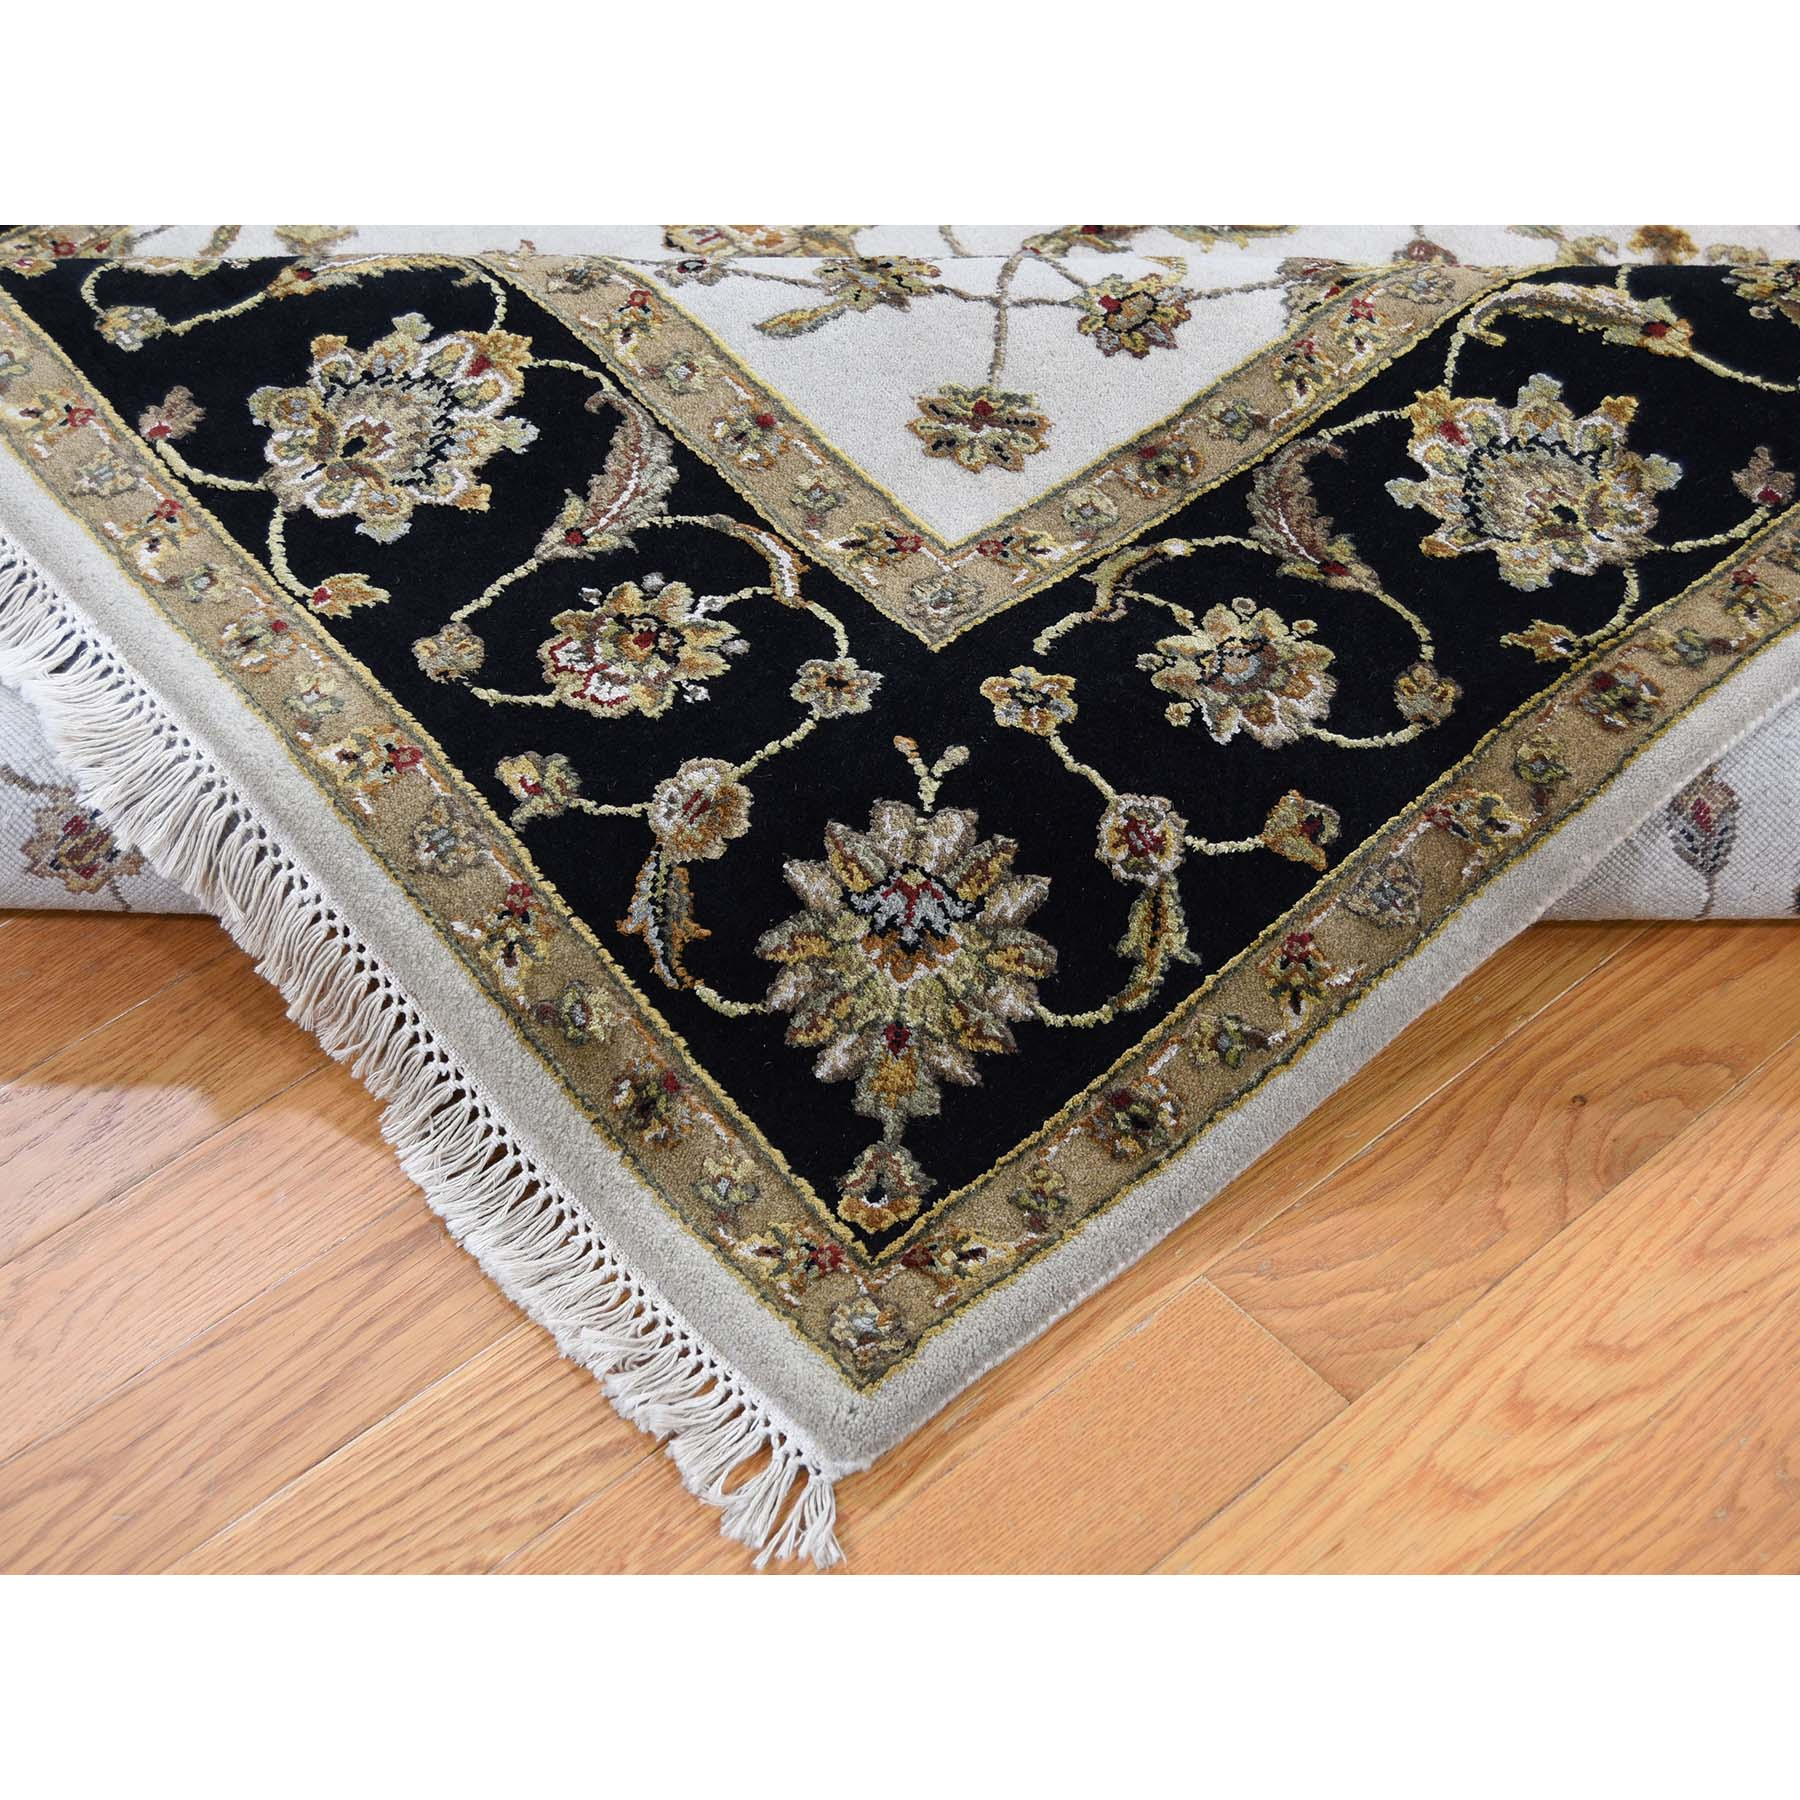 6-1 x9-2  Rajasthan Half Wool and Half Silk Hand-Knotted Oriental Rug